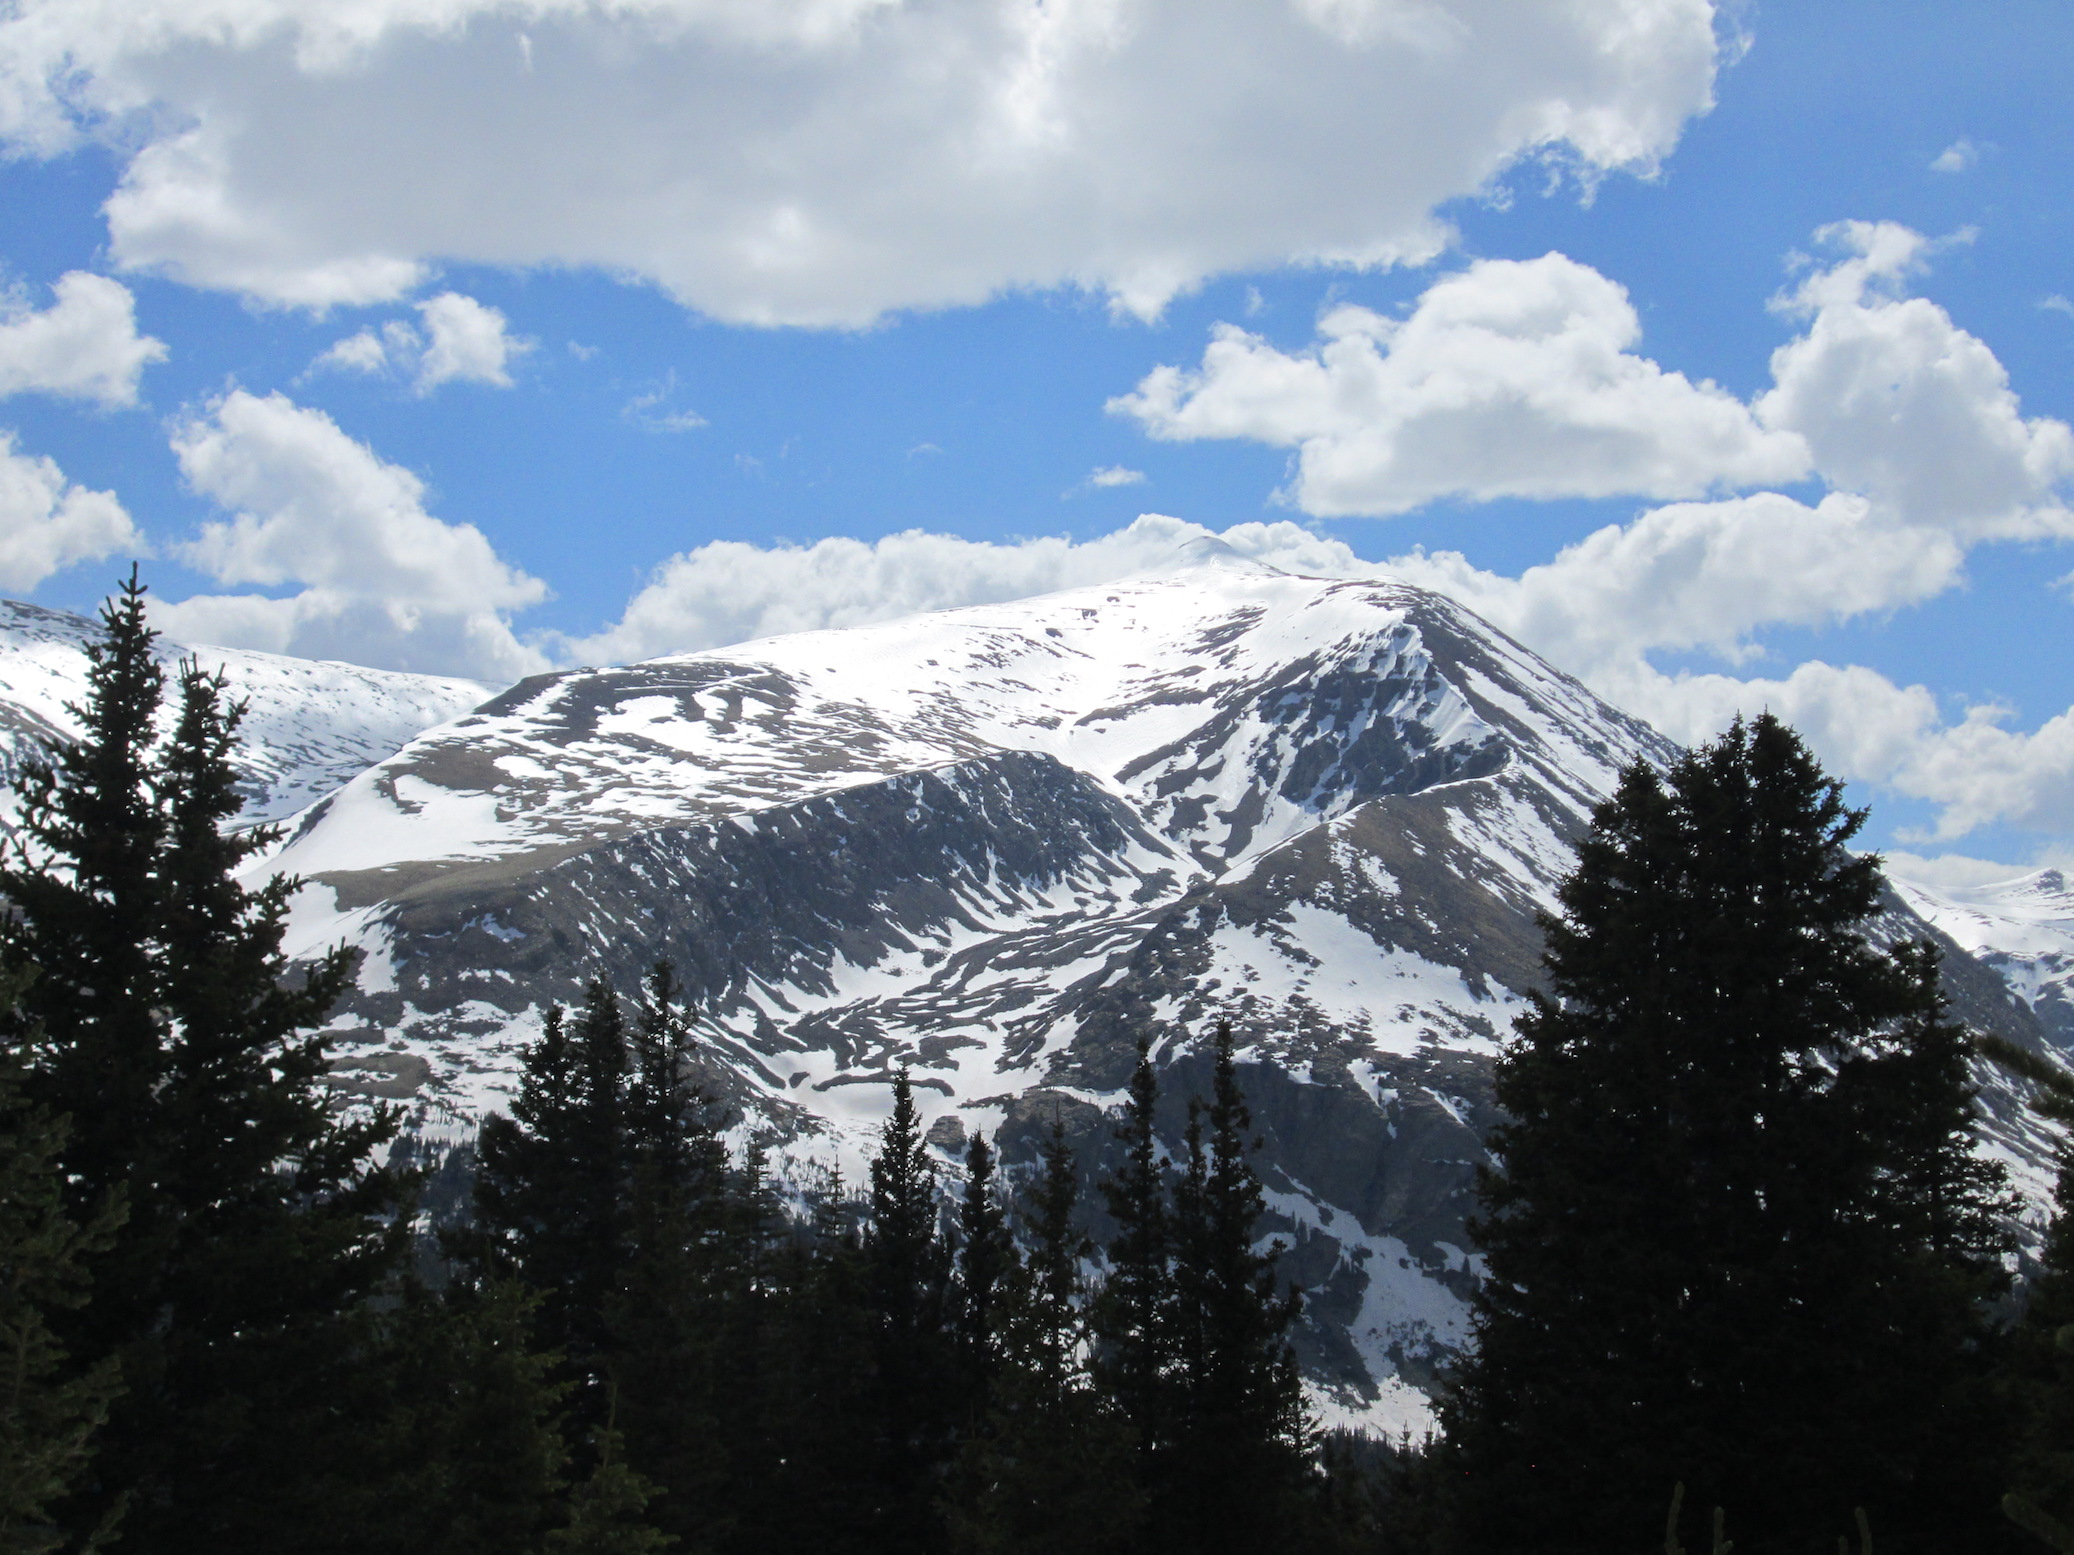 Photo taken from Hoosier Pass CODOS site looking at Mt. Bross. Similar to Berthoud and Loveland Pass, dust deposition in this area is light. Further to the southwest the Collegiate Peaks received a greater amount of dust deposition.